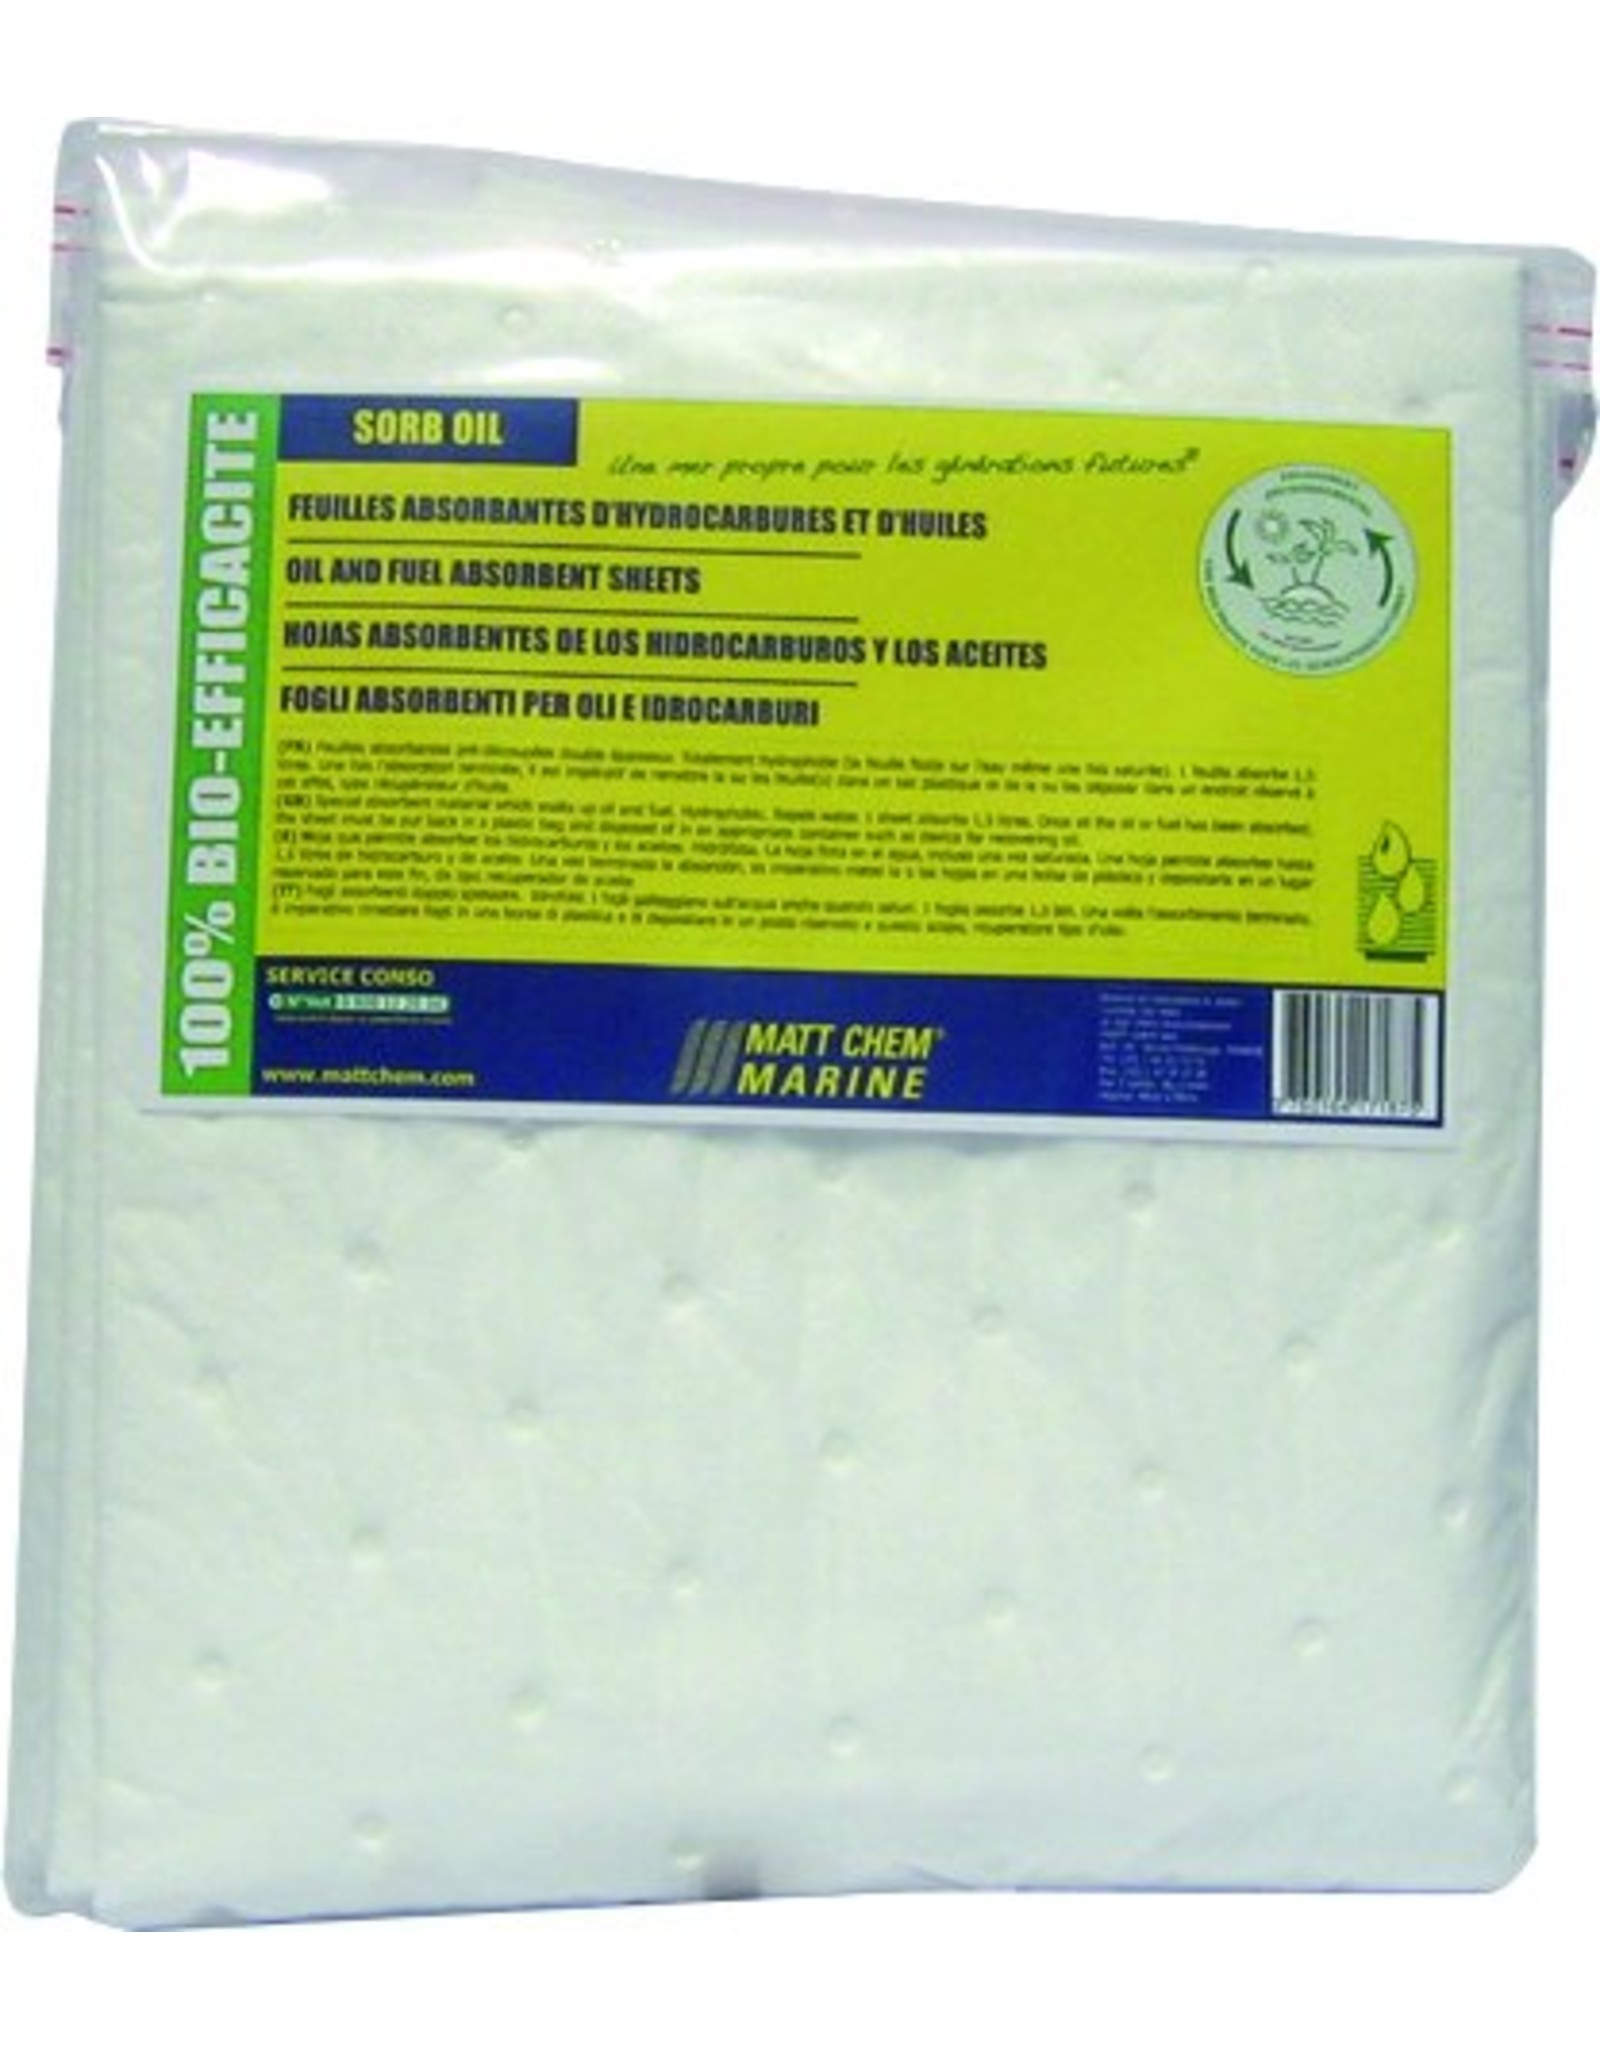 Matt Chem Marine SORB-OIL /3 sheets